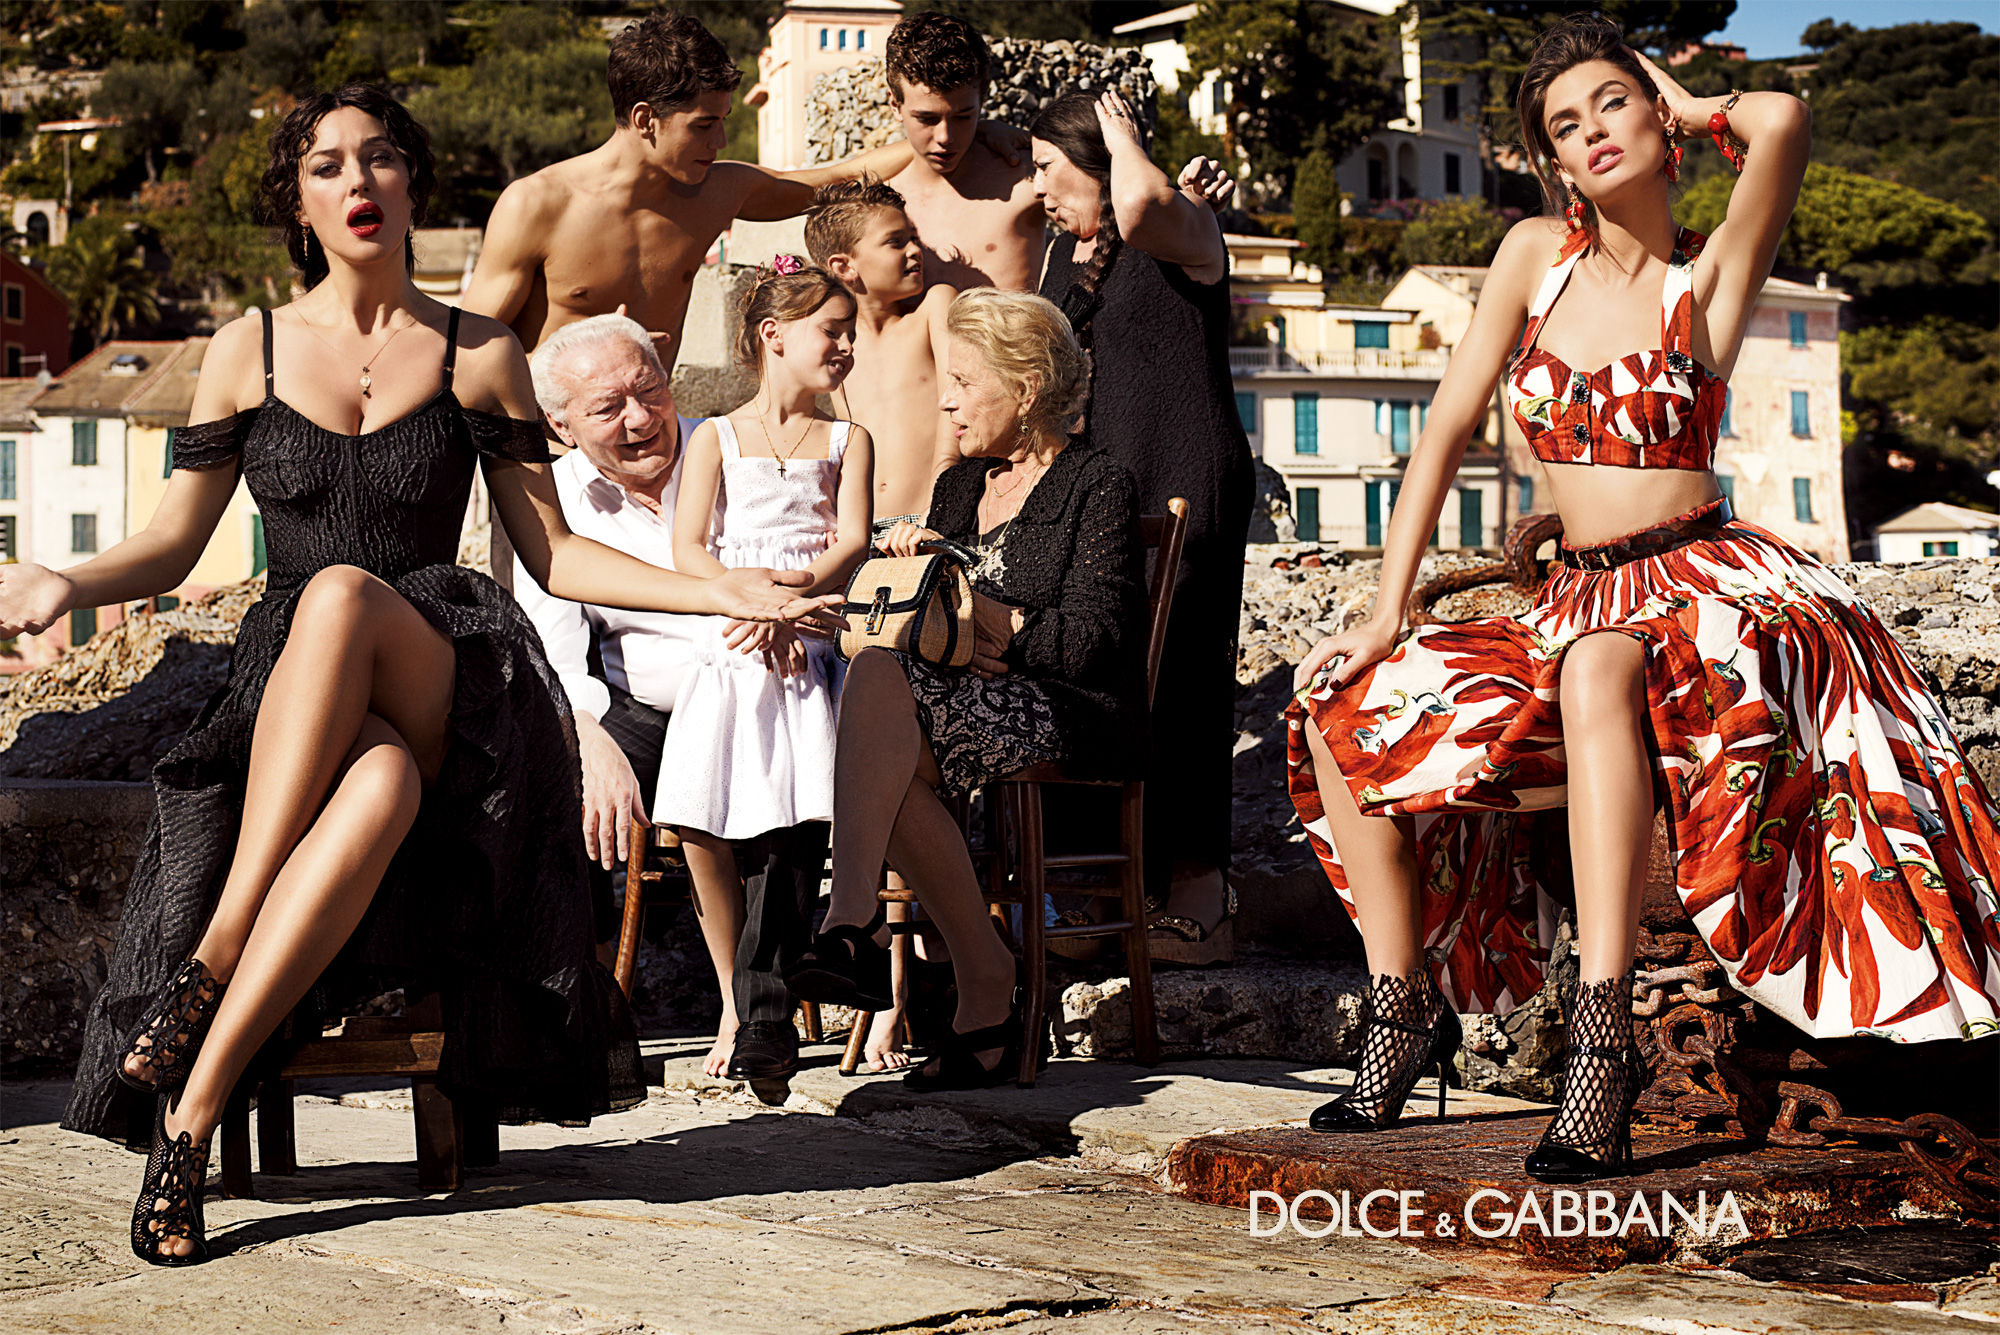 Dolce & Gabbana under fire for comments on family - Open Mic ...